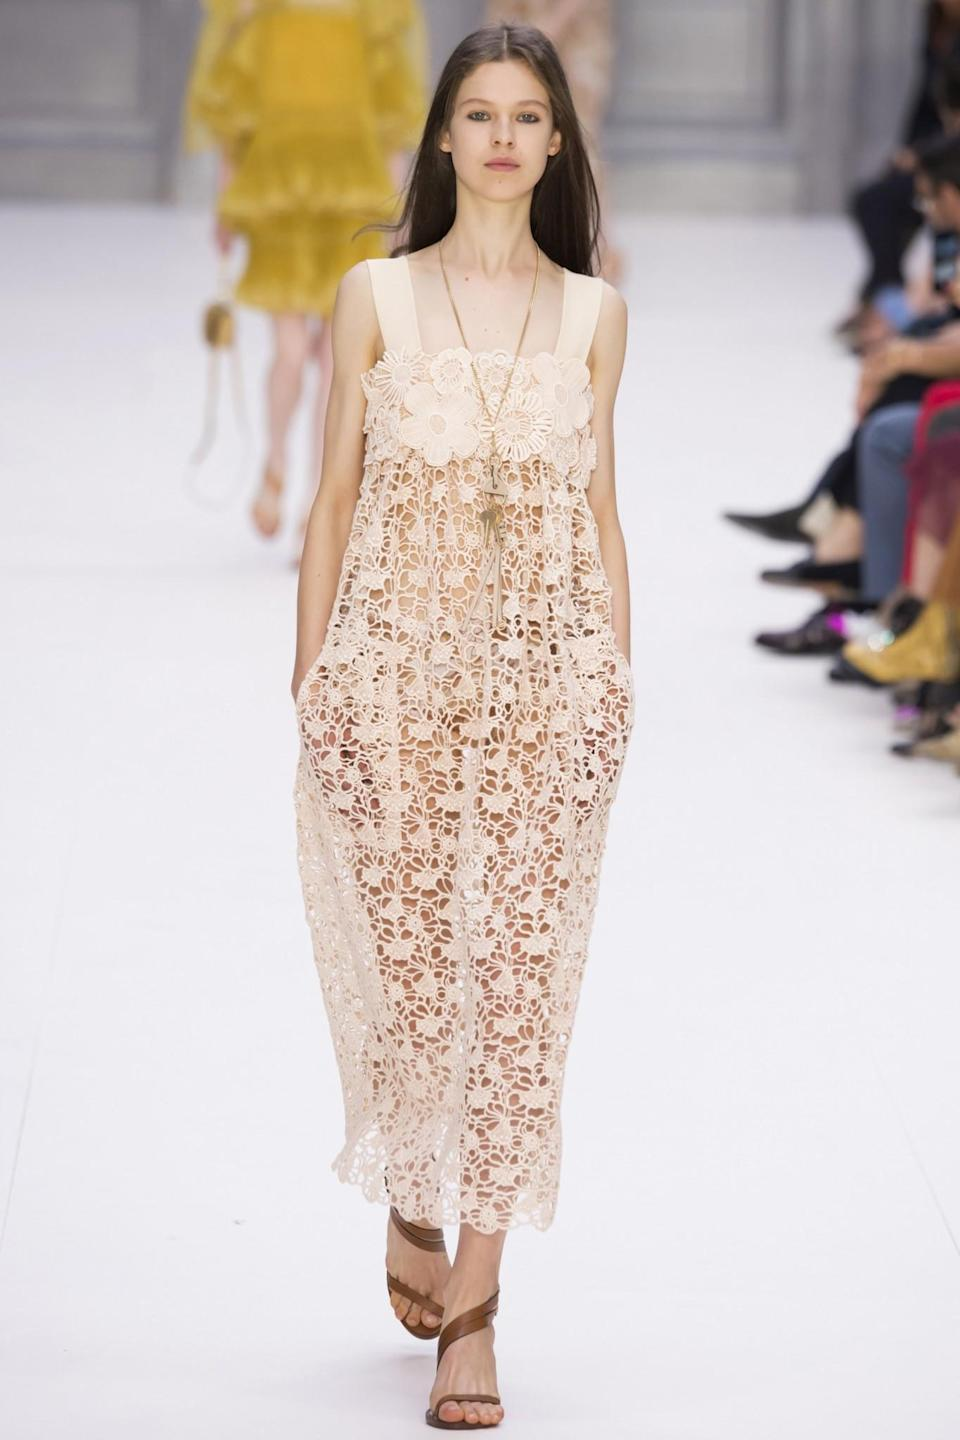 <p>A model in a classic Chloé silhouette and style — a 1970s inspired, loosely fitted, delicate lace dress that's effortlessly cool and ultrafeminine. (Photo: Getty Images) </p>